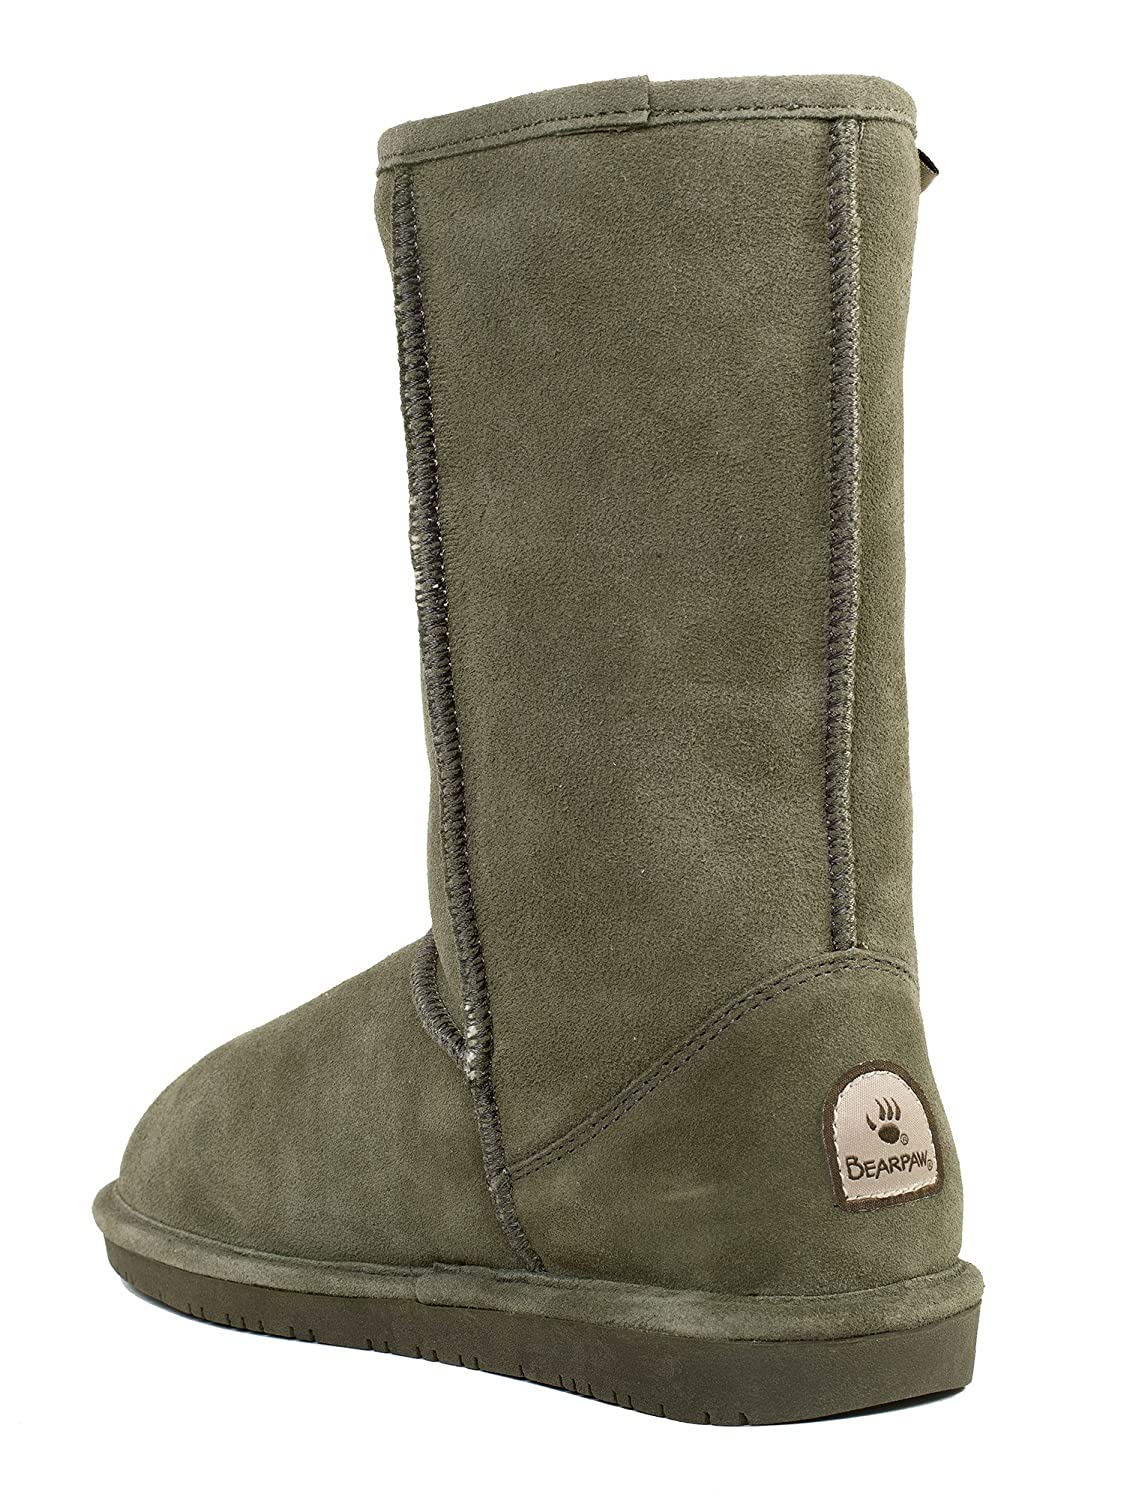 BEARPAW Women's Emma Fashion Boot B01M7WC077 11 B(M) US|Olive